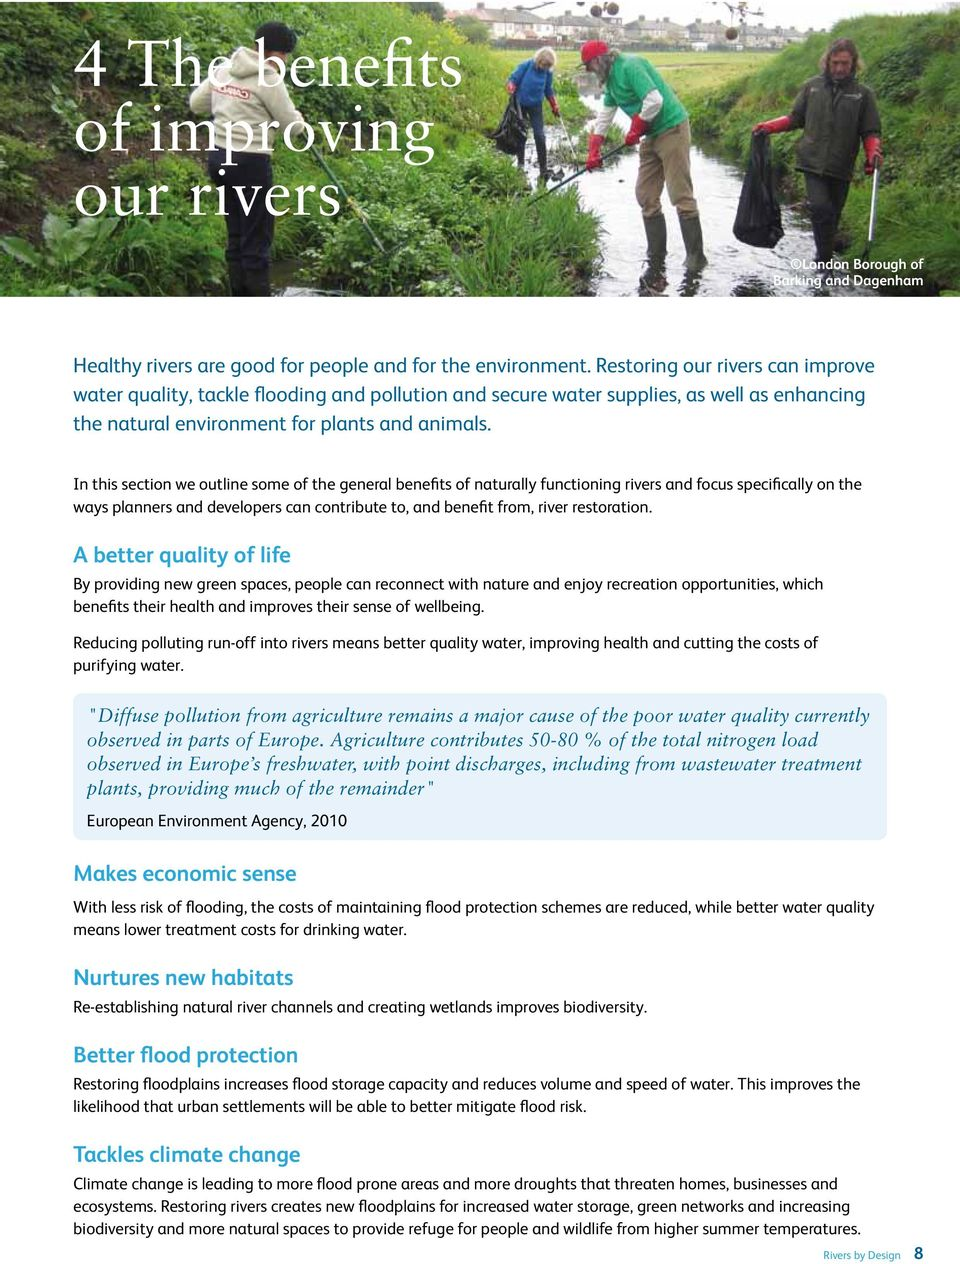 In this section we outline some of the general benefits of naturally functioning rivers and focus specifically on the ways planners and developers can contribute to, and benefit from, river